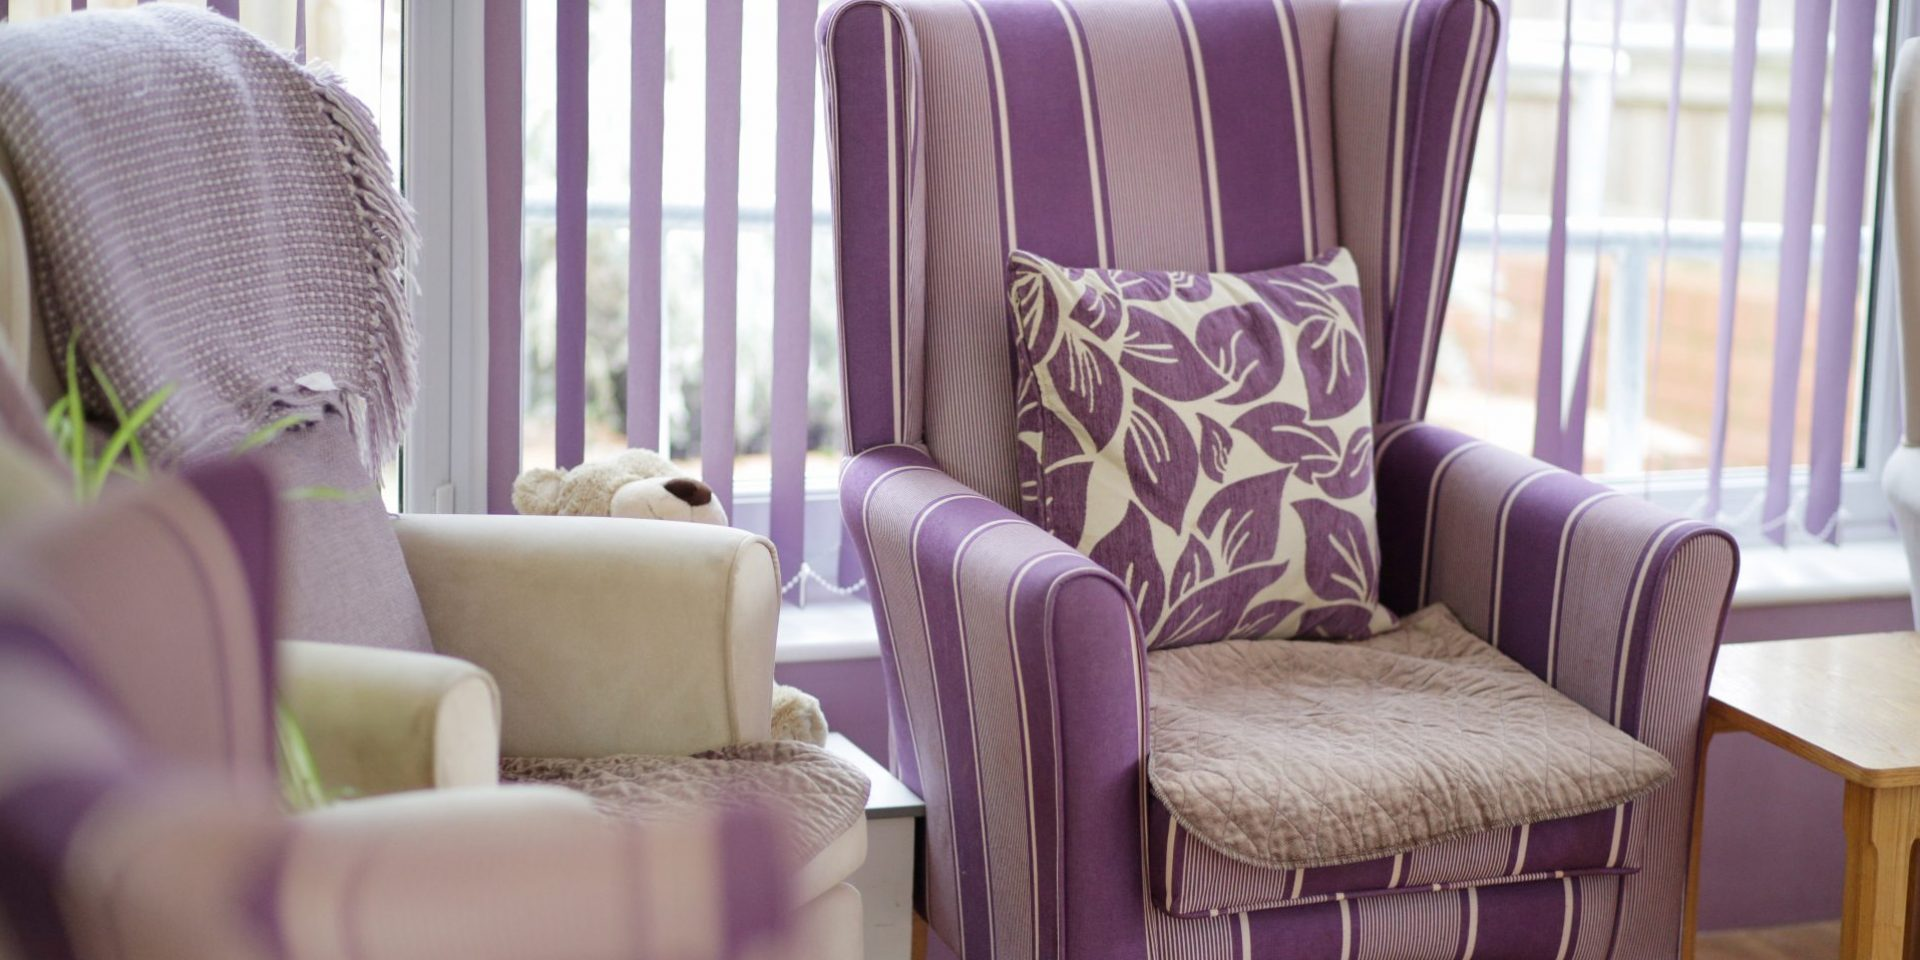 Dementia-friendly Design at Kingston House Care Home in Pelsall